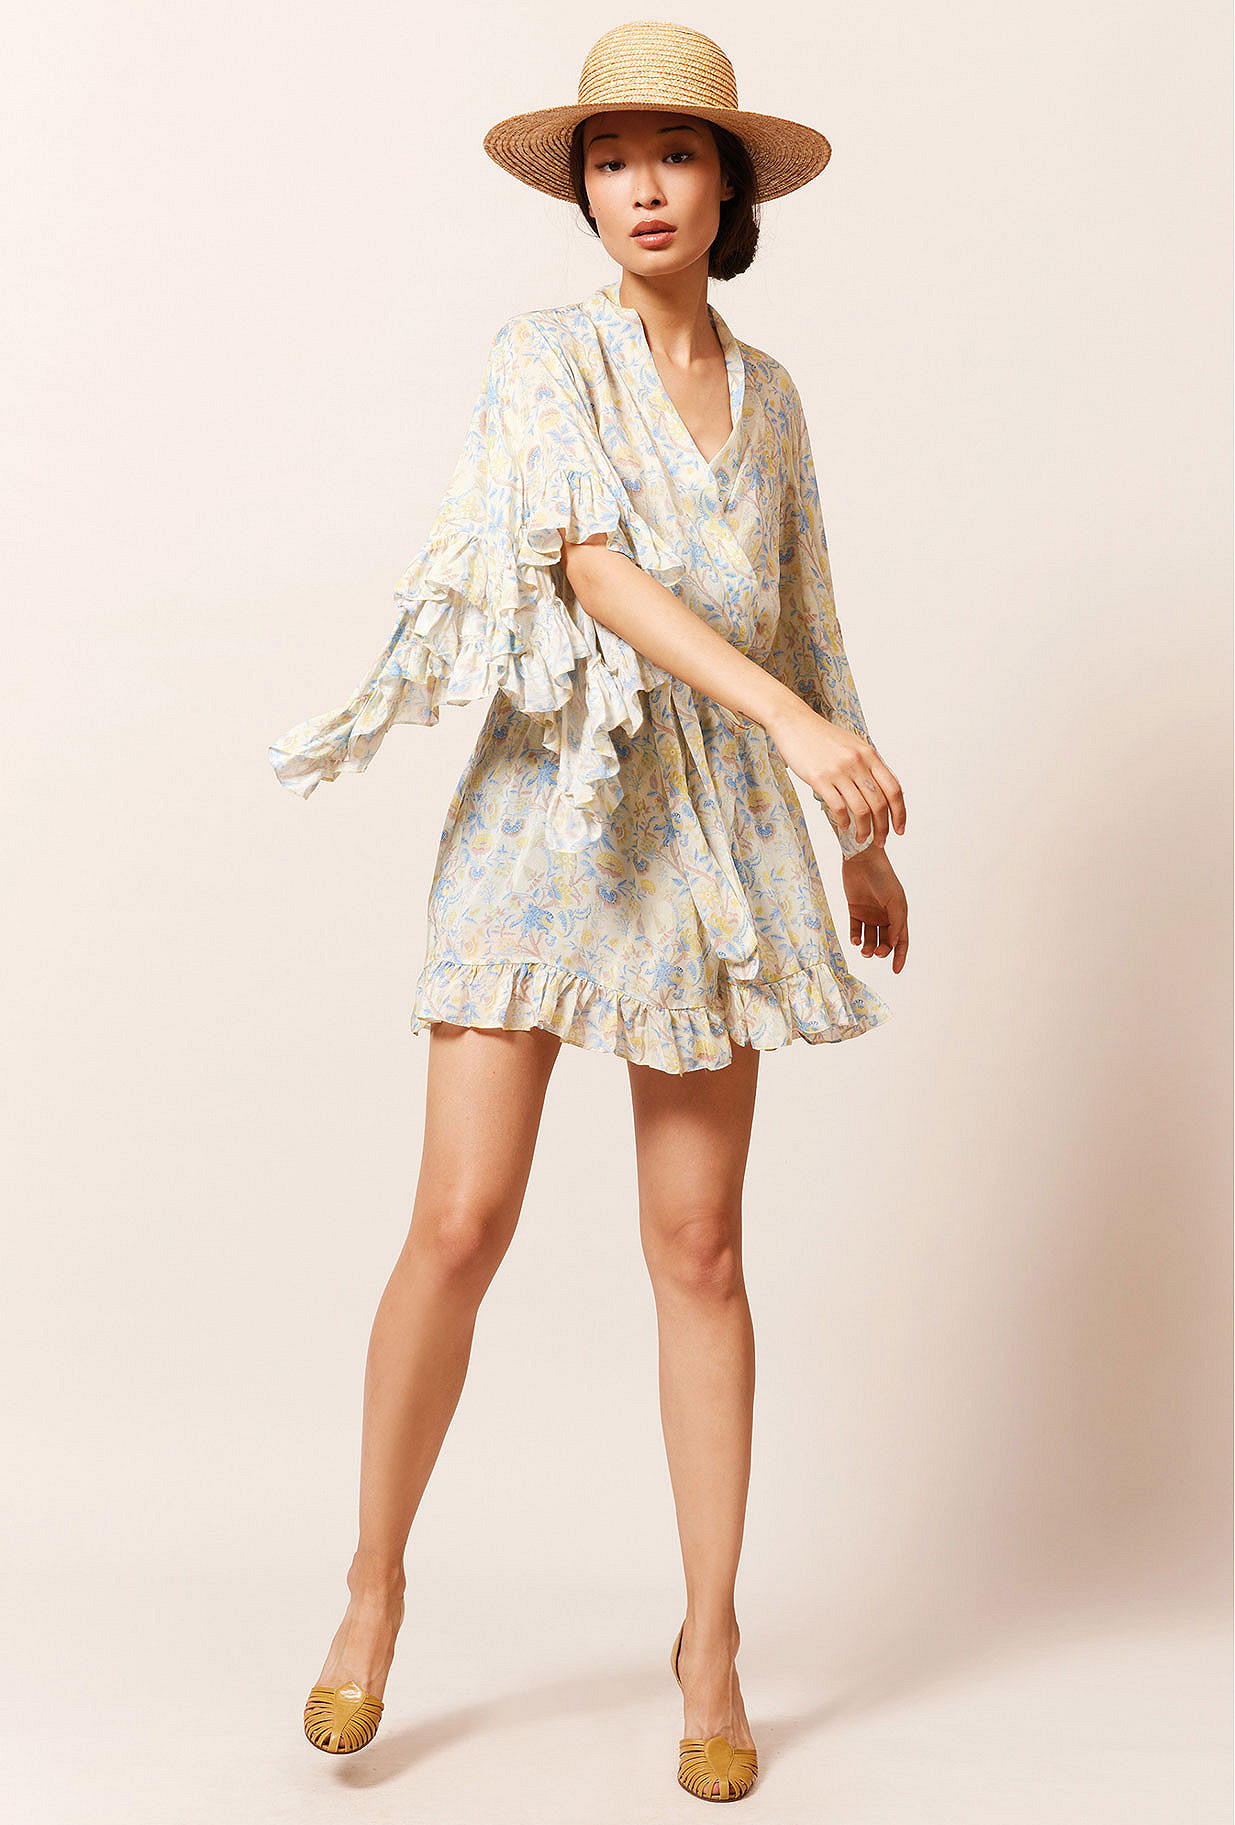 Paris clothes store Kimono  Sally french designer fashion Paris